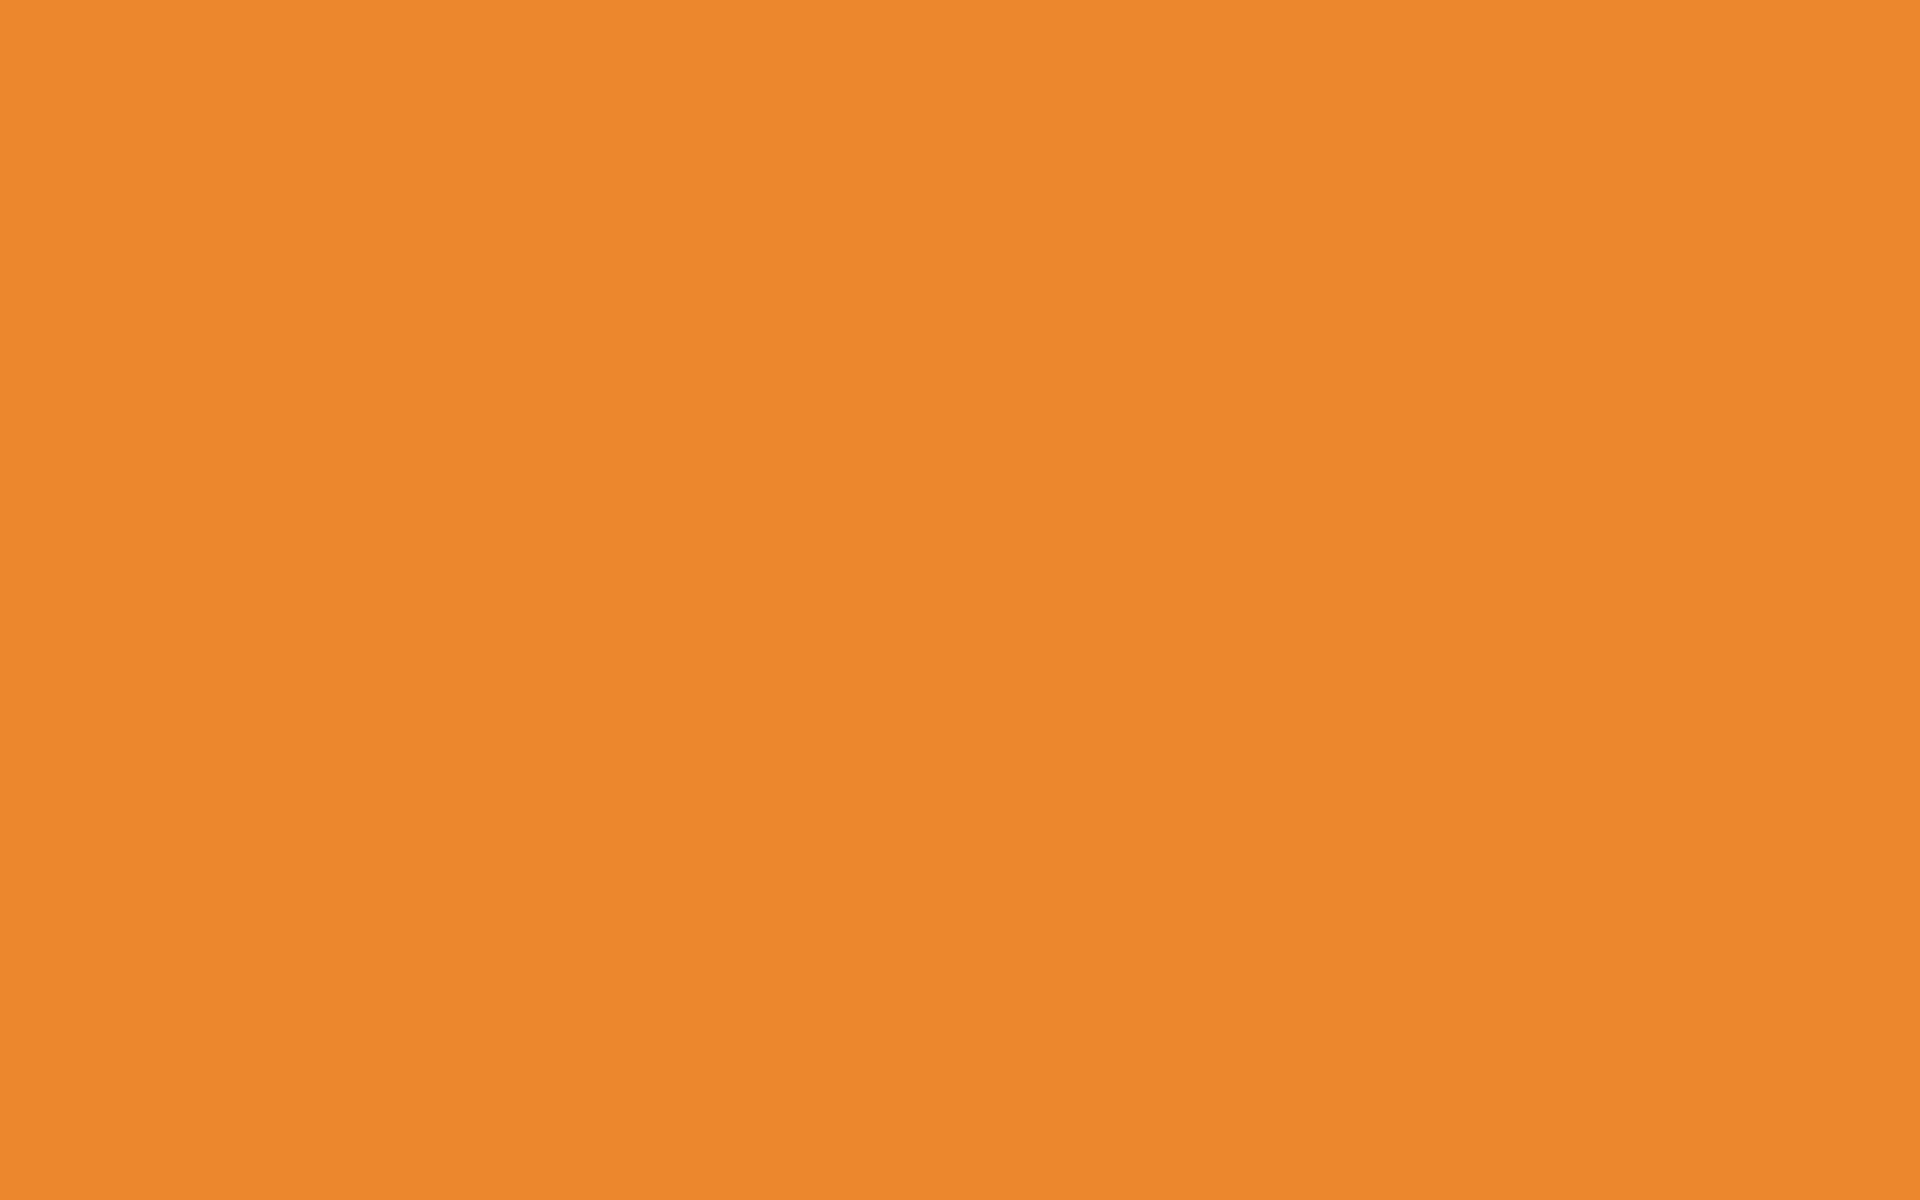 1920x1200 Cadmium Orange Solid Color Background